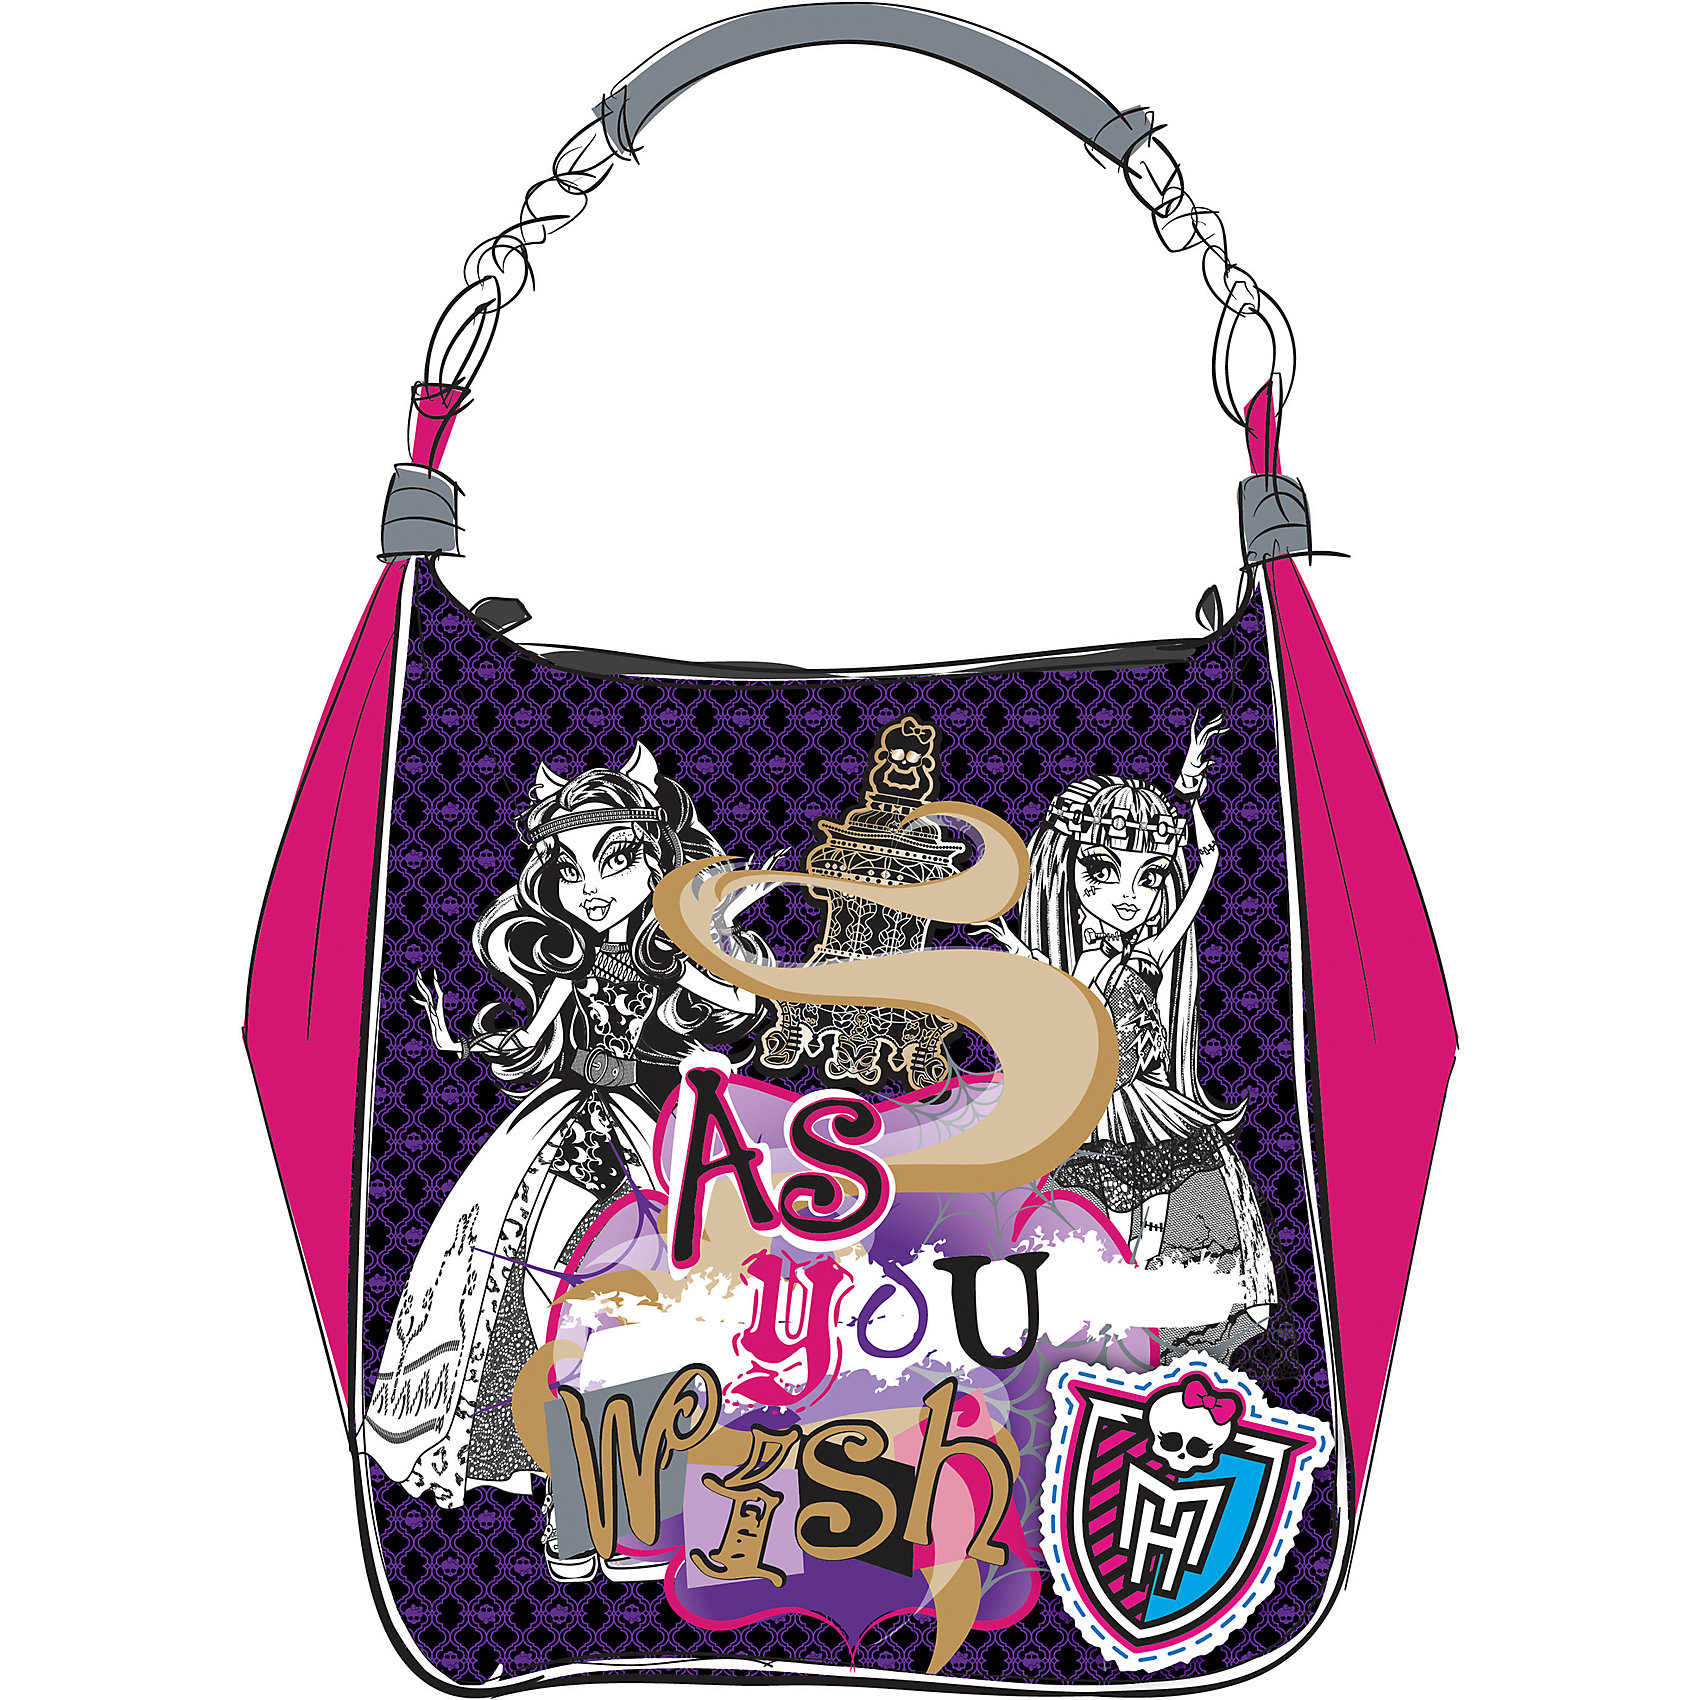 CENTRUM Сумка  Мonster High centrum сумка monster high 27 24 3 см